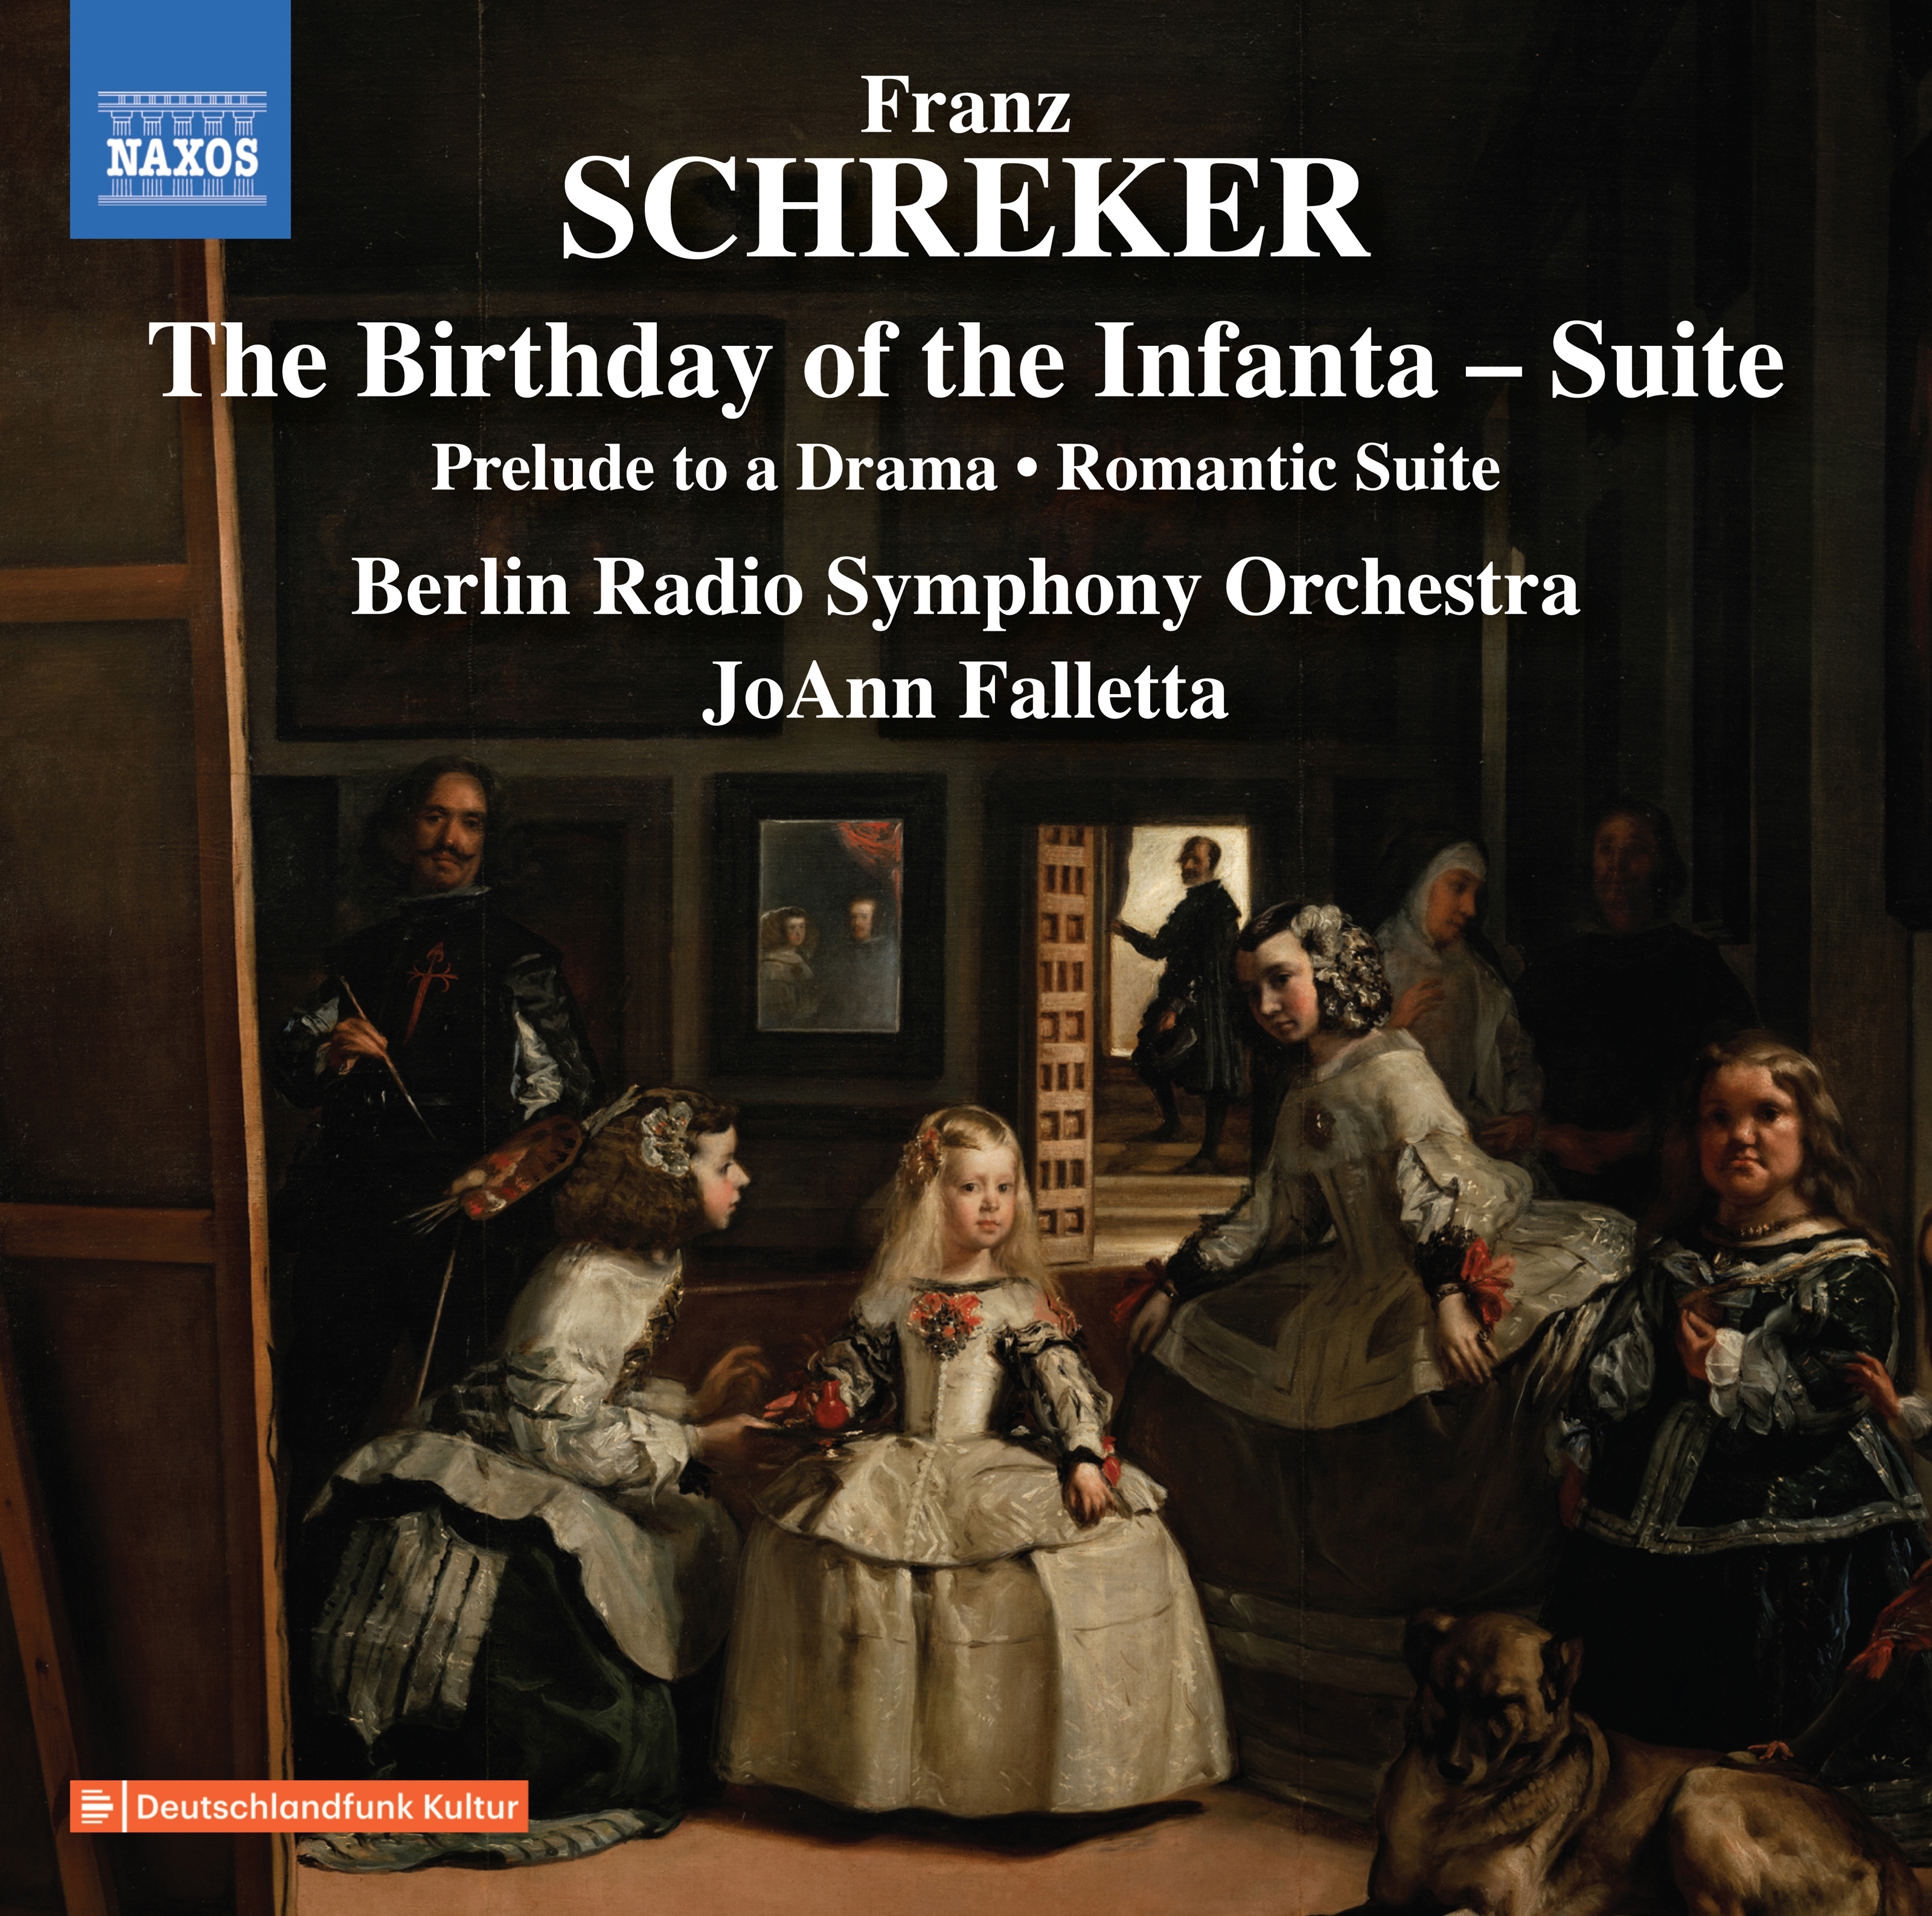 Schreker: The Birthday of the Infanta Suite, Prelude to a